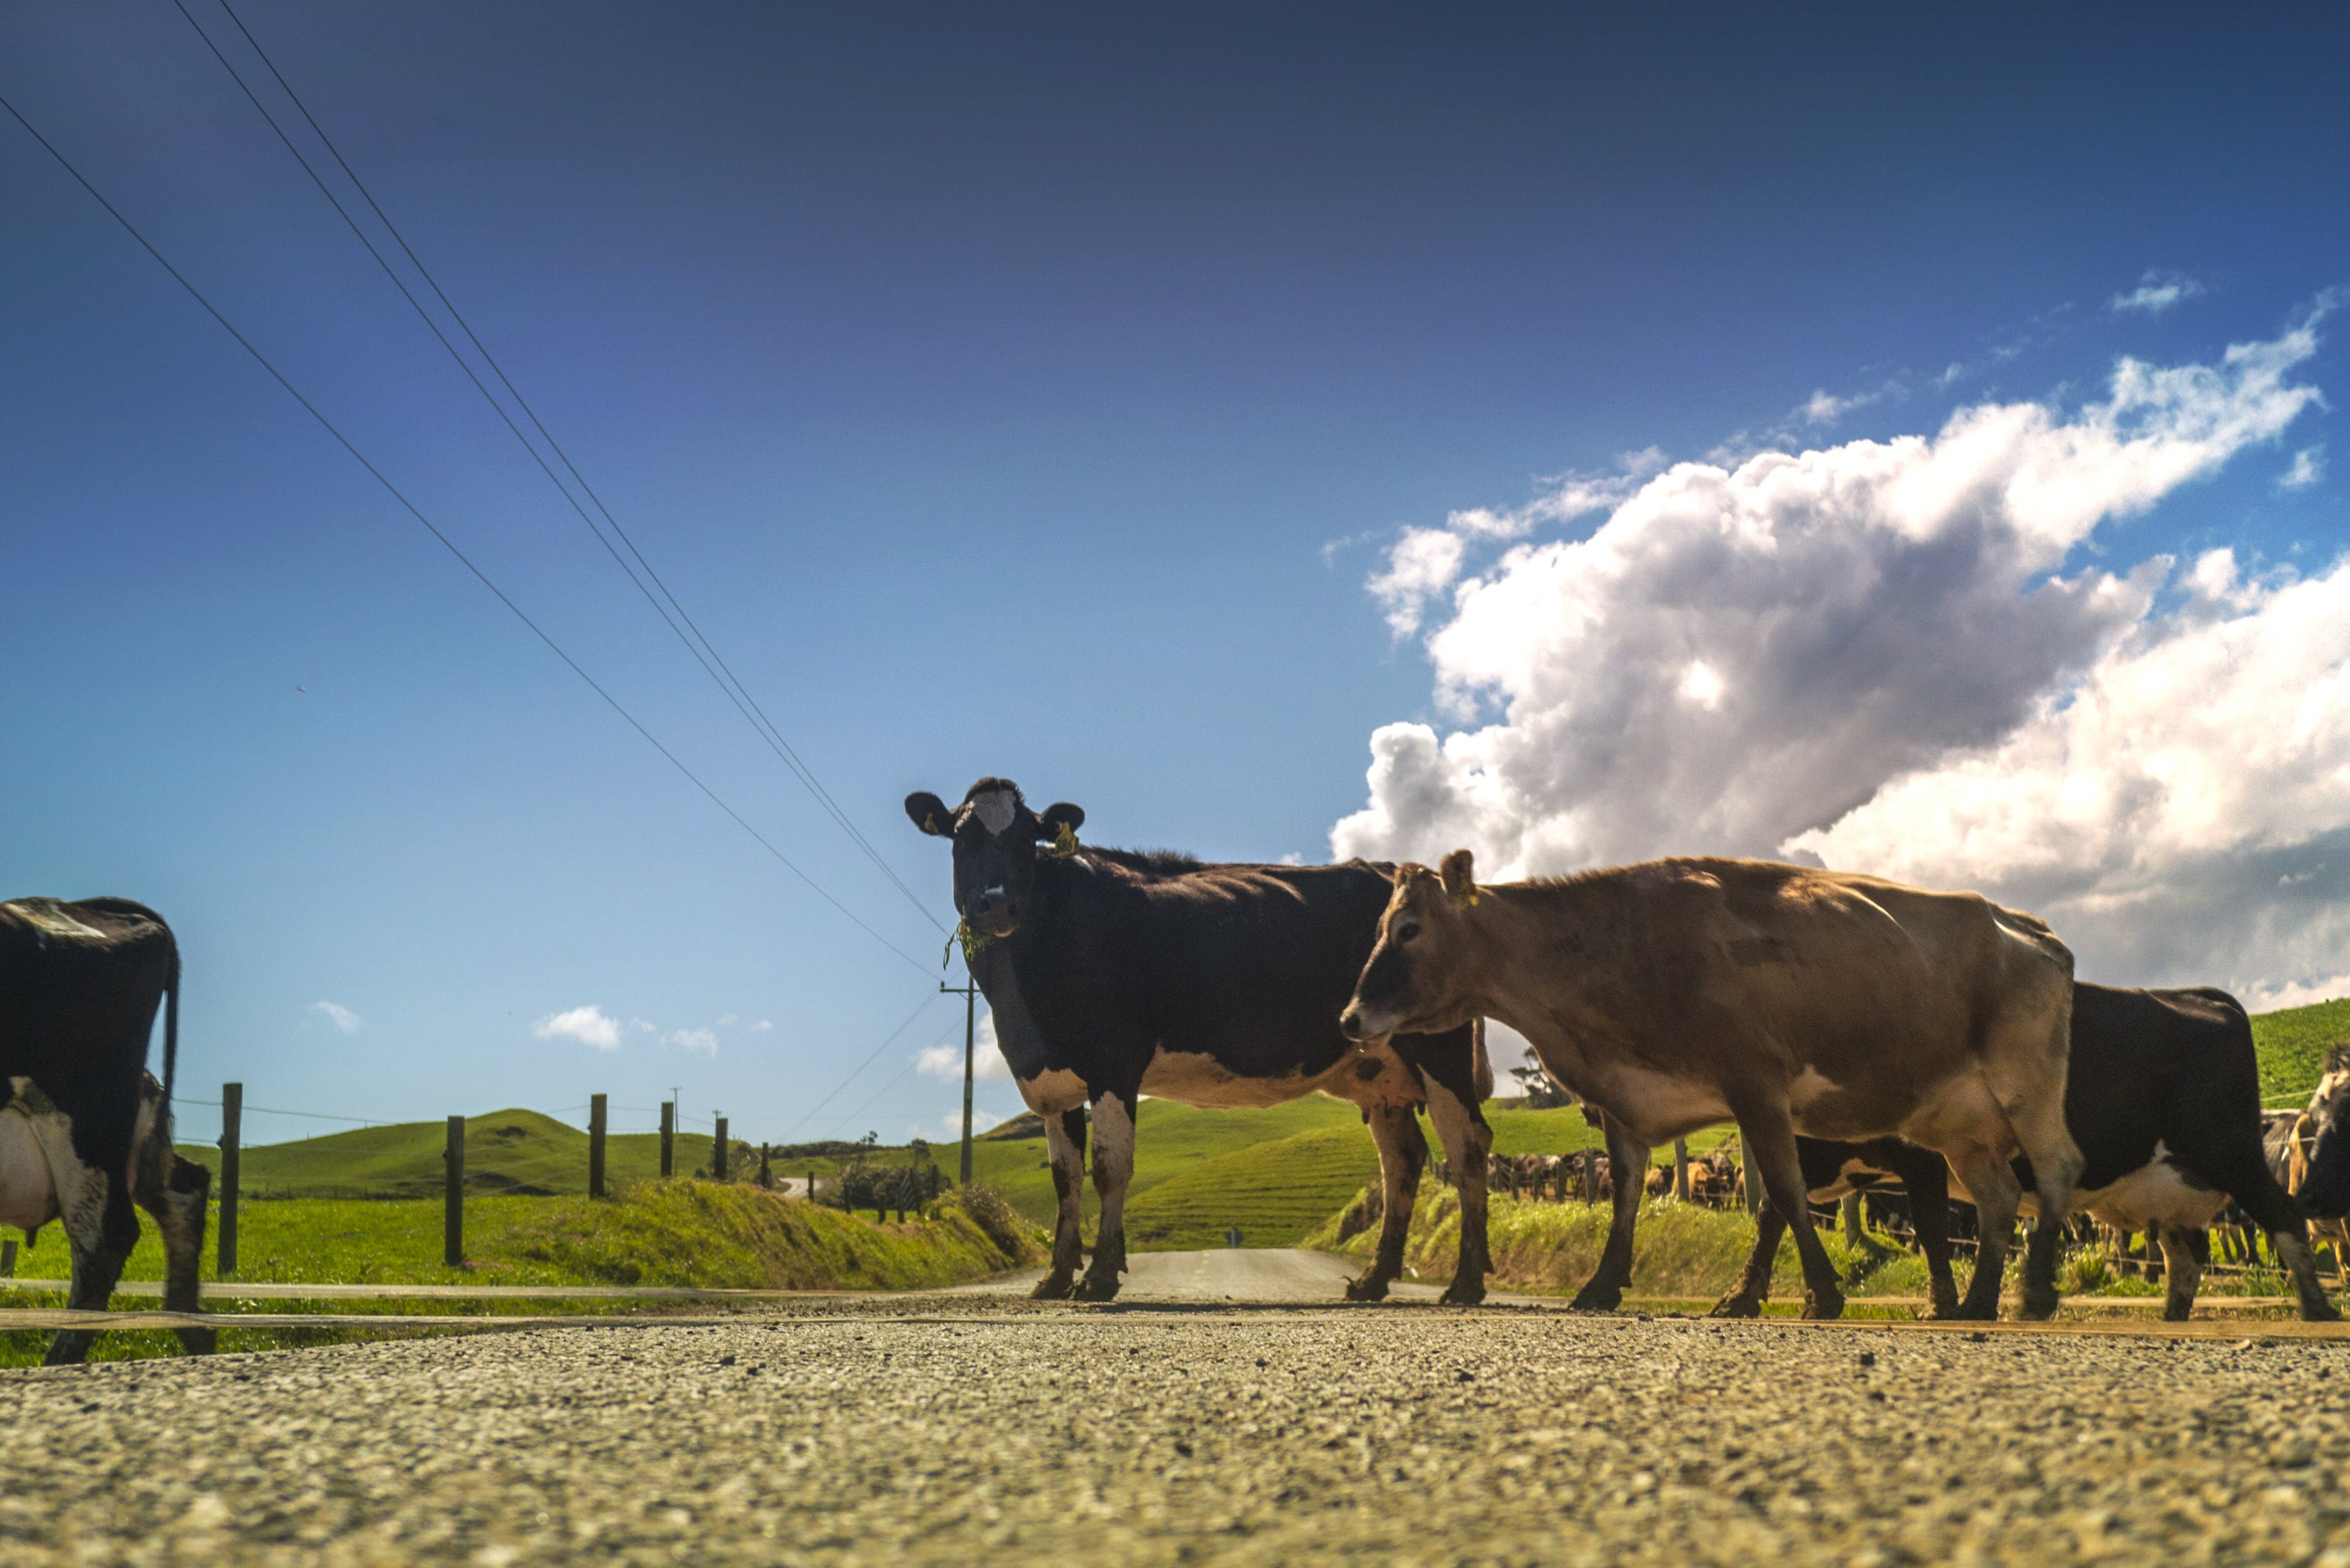 Black and White Cow Standing Beside Brown Cow during Daytime